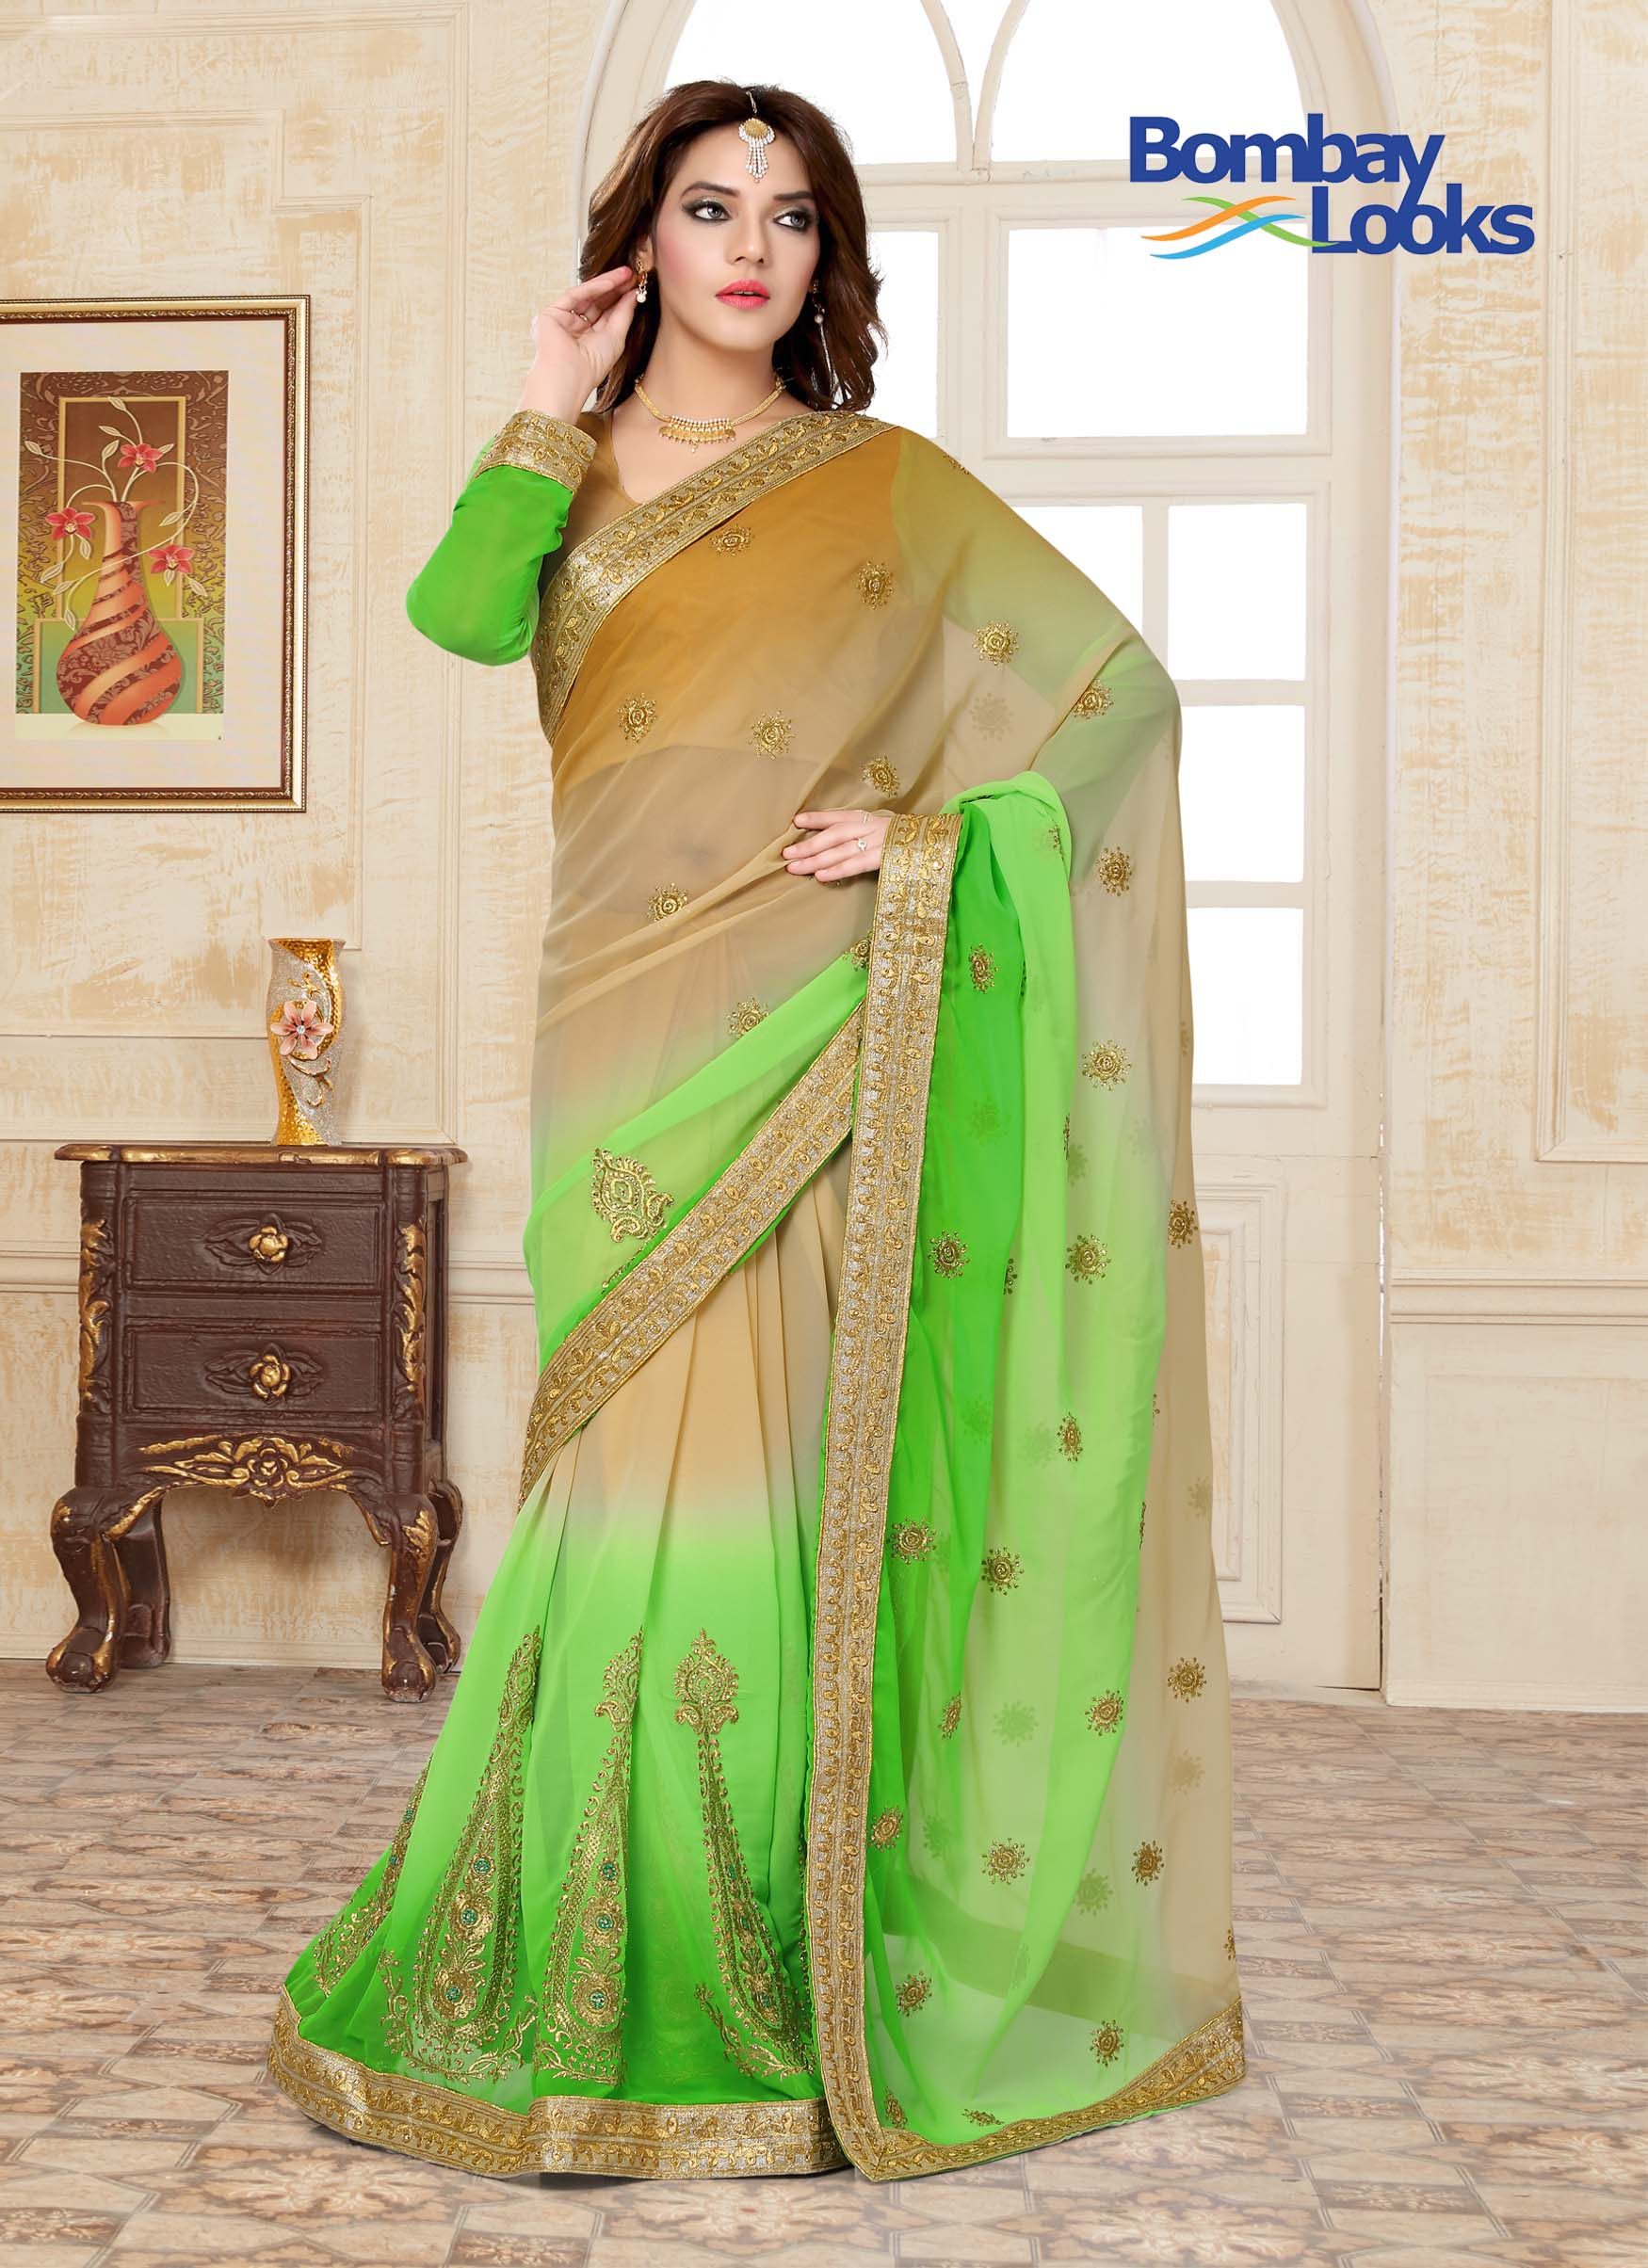 Beautiful ombre shaded georgette saree in caramel and soft green with golden embroidry and full sleeved blouse